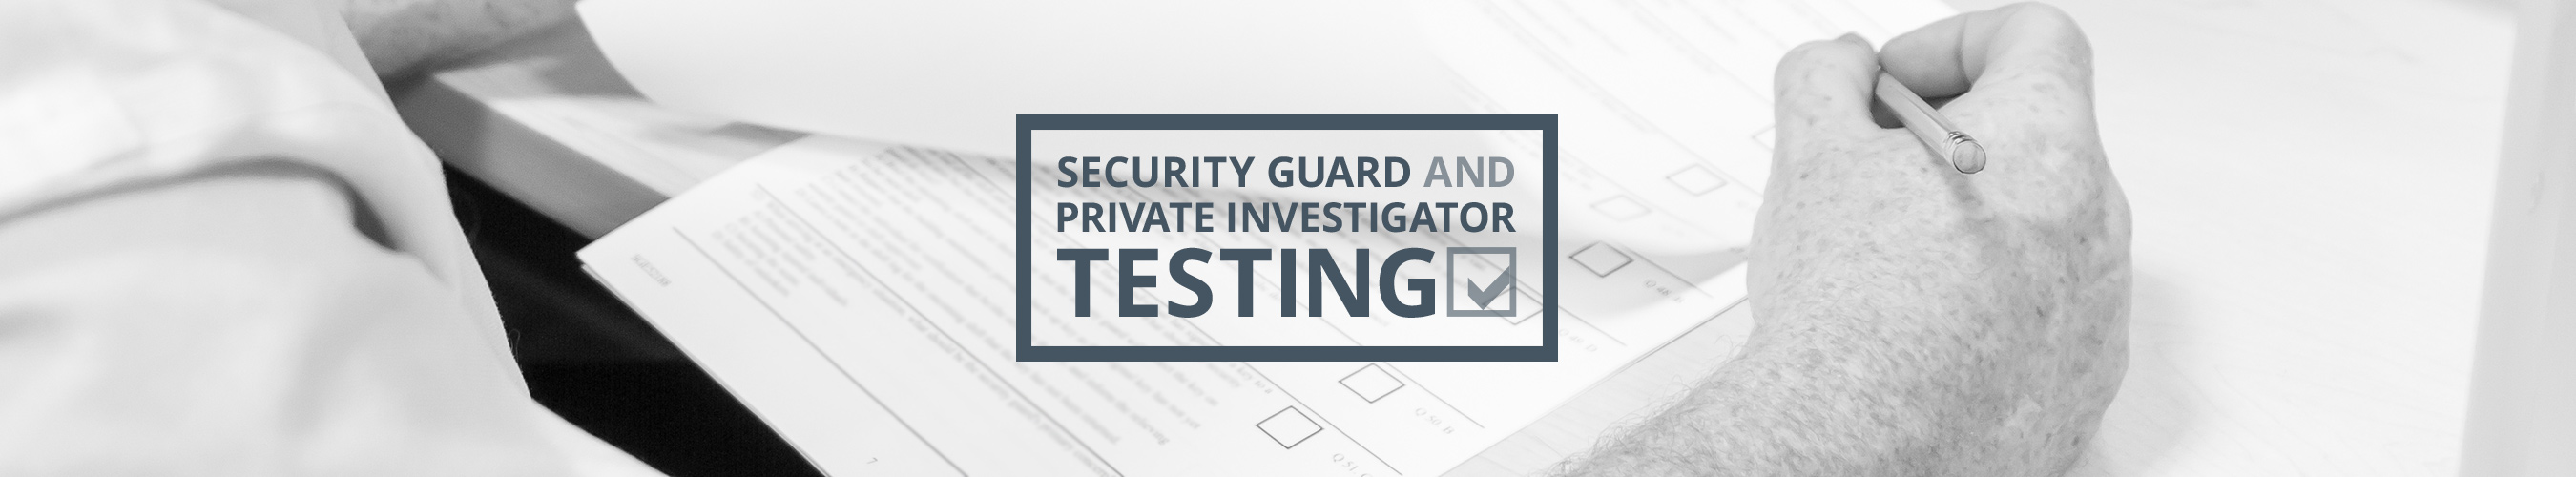 security-guard-testing-bg6.jpg